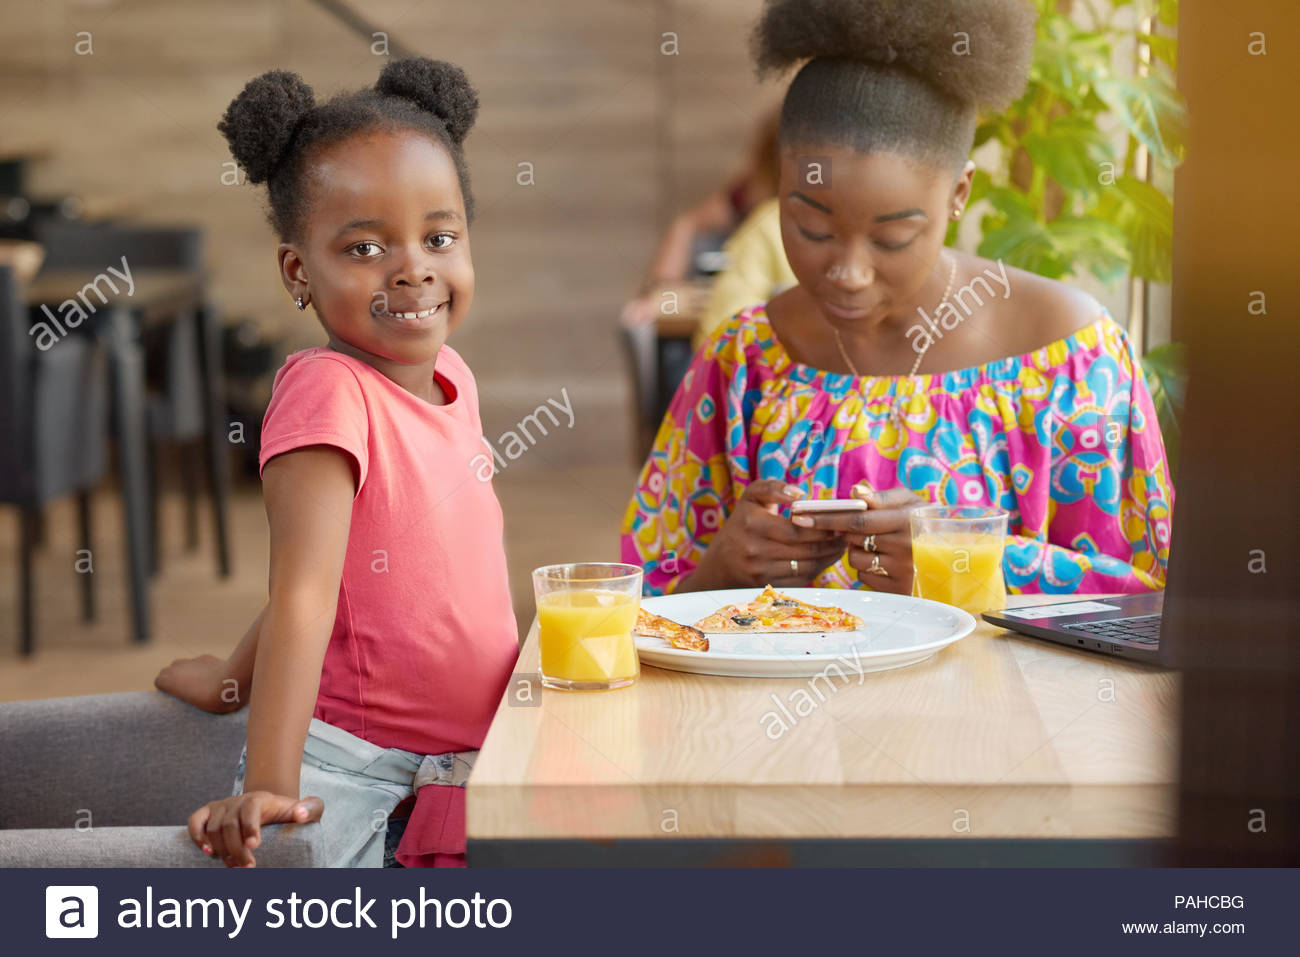 Happy smiling mother and daughter drinking orange juice, manger des pizzas. Maintien de la mère, en pleine discussion dans Internet. Cute little girl looking at camera, heureux, dépenses de temps en famille. Photo Stock